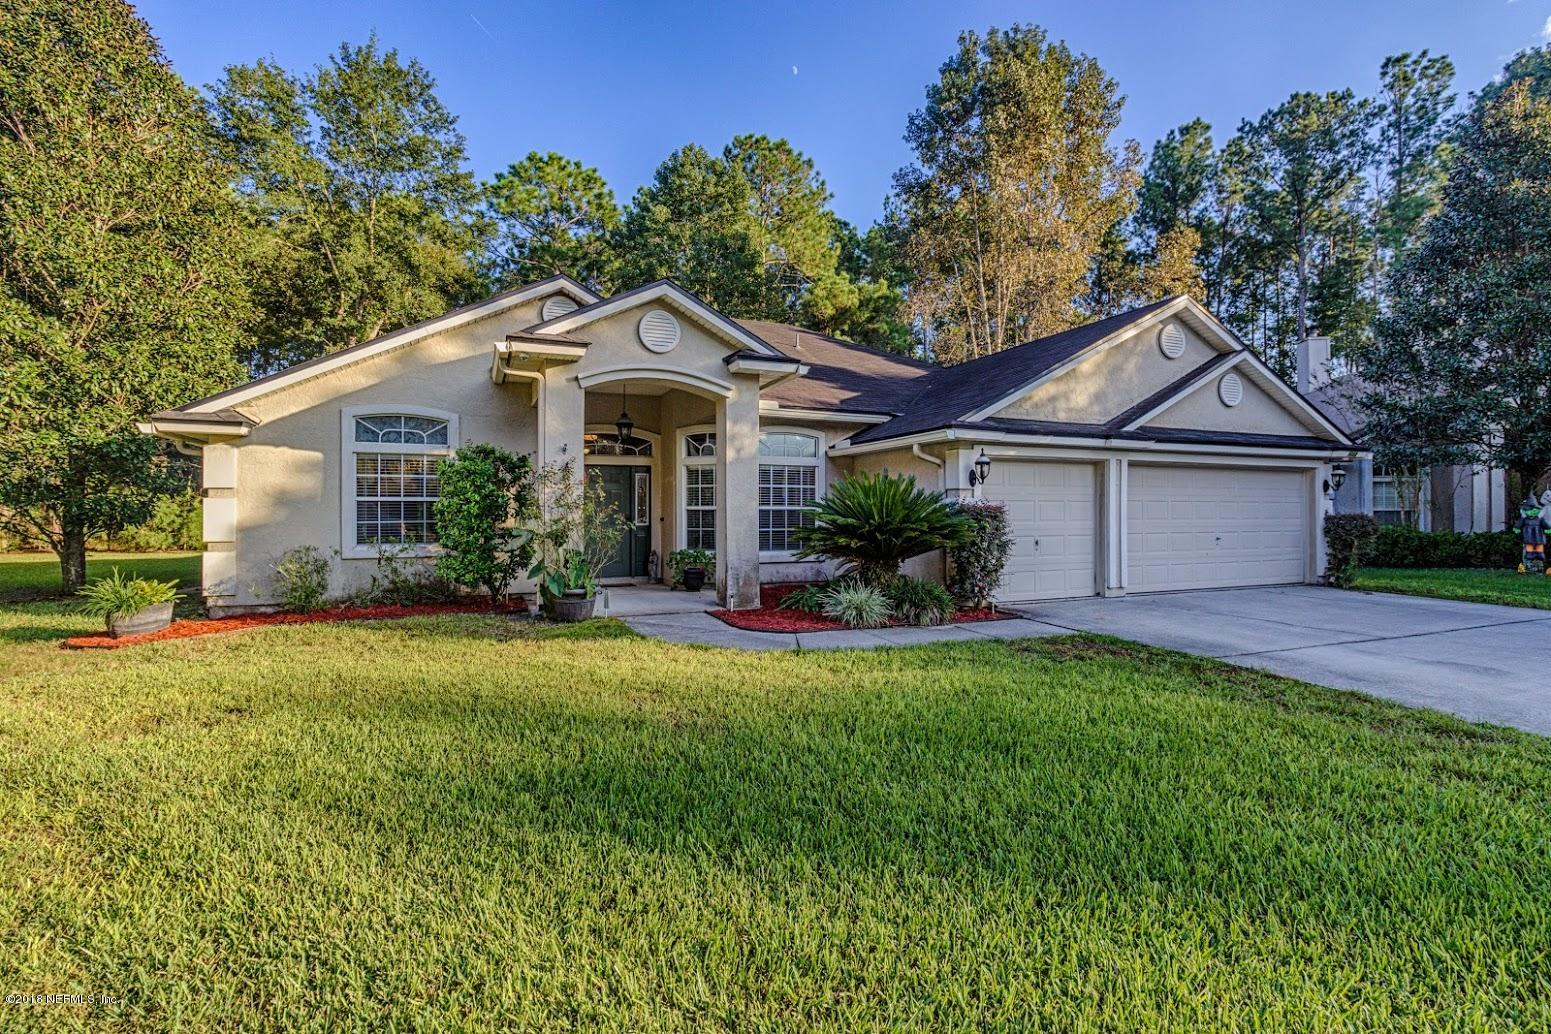 1222 S KYLE WAY, Saint Johns in ST. JOHNS County, FL 32259 Home for Sale